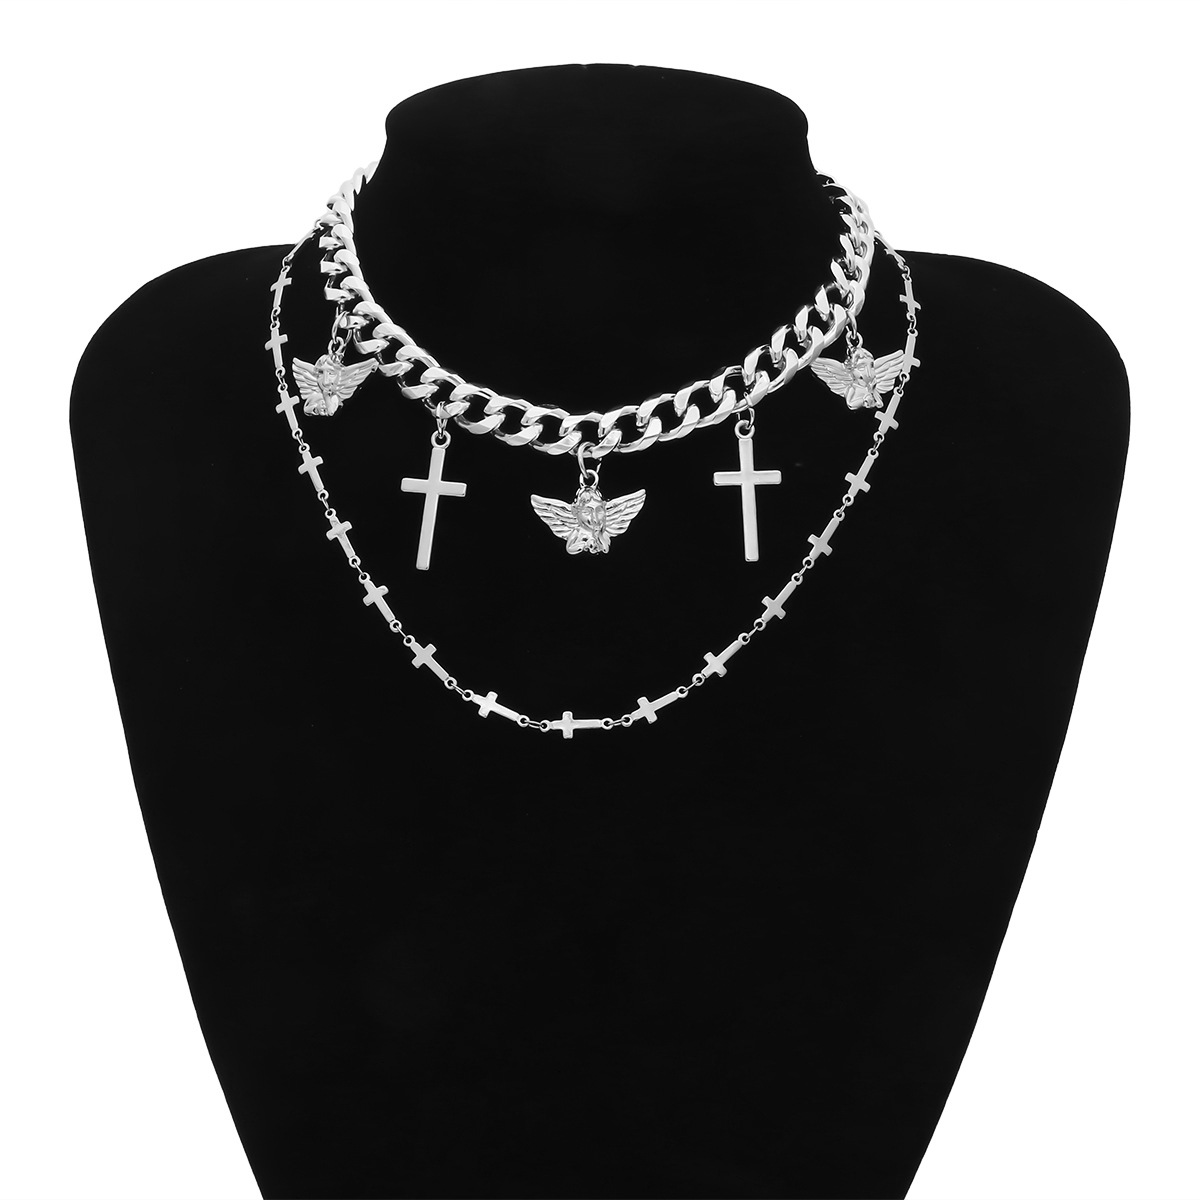 Cross Angel Necklace Pendant Layered Necklace Chains Chokers Necklaces